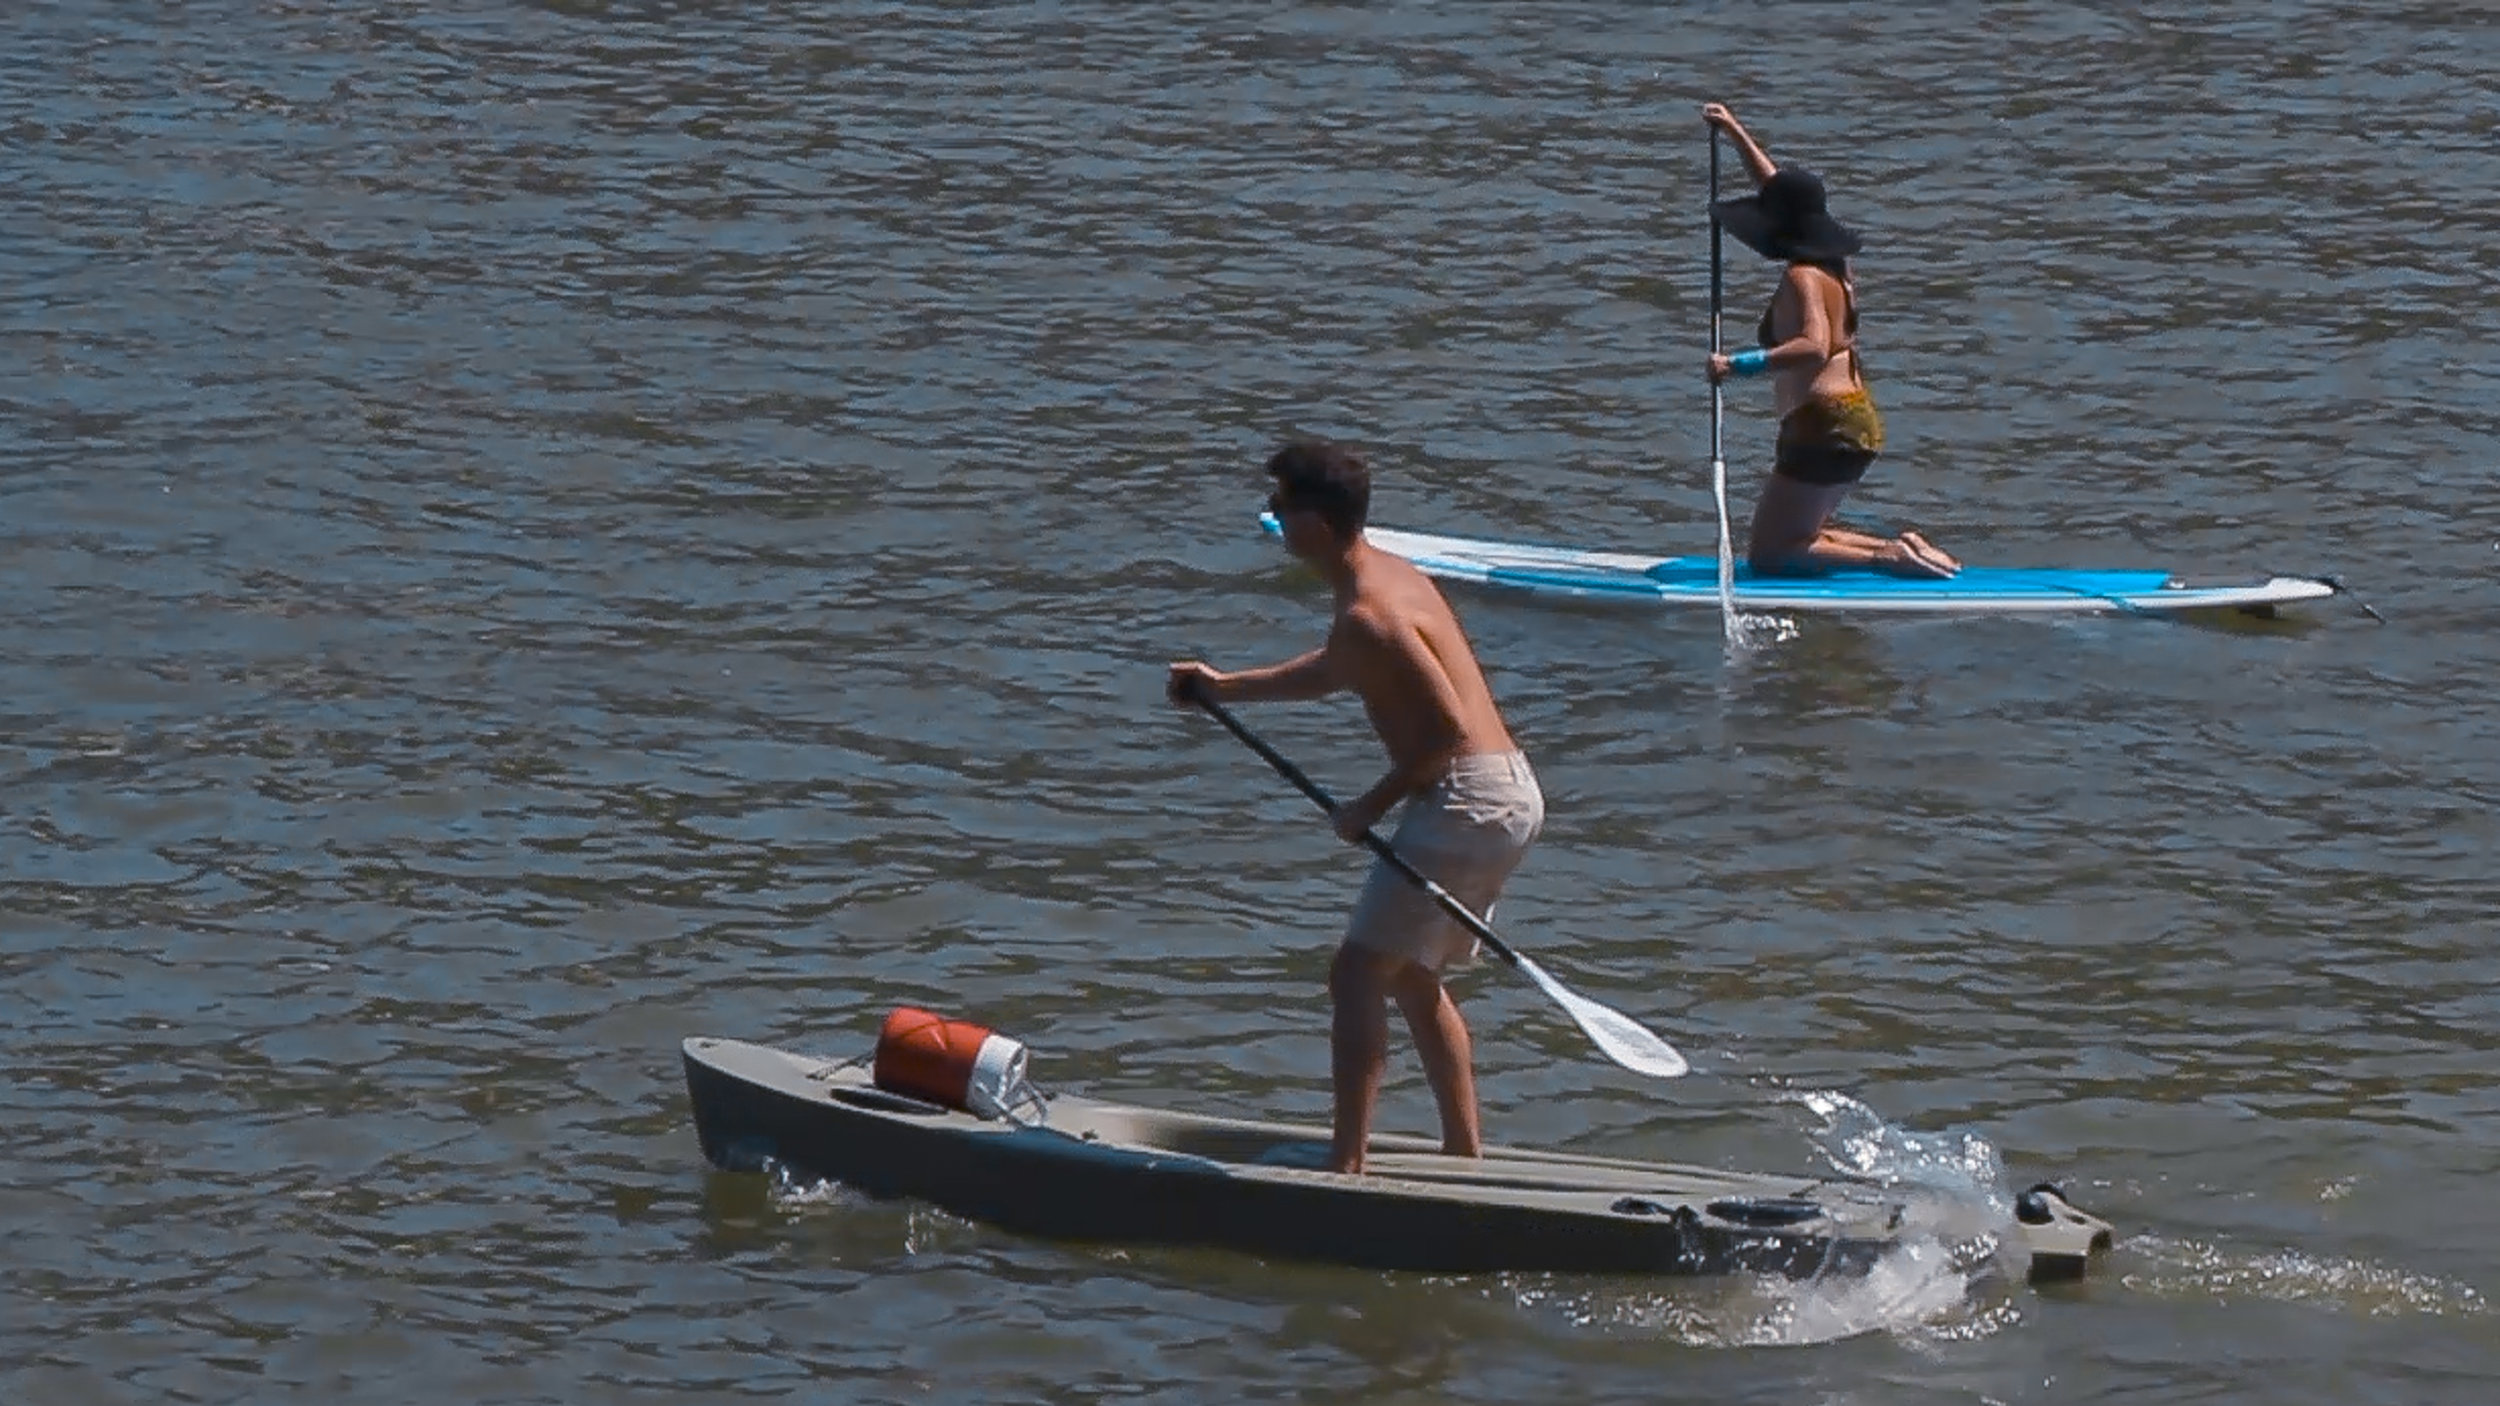 Our Starboard Hybrid SUP out on the water in Mismaloya Bay